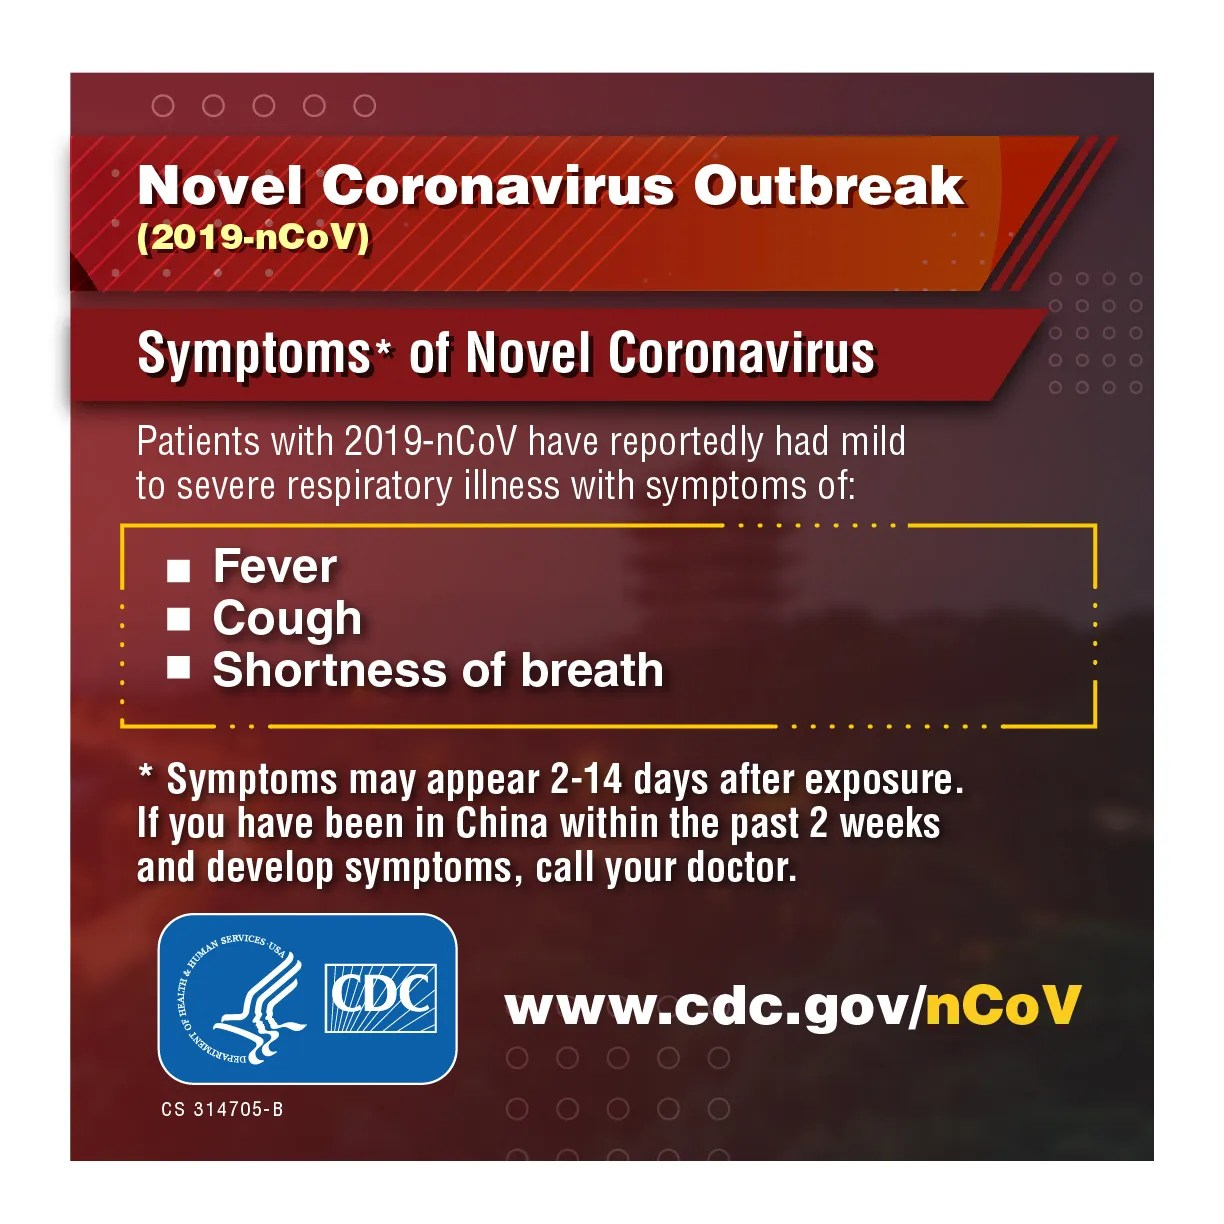 SC investigating several people over coronavirus concerns